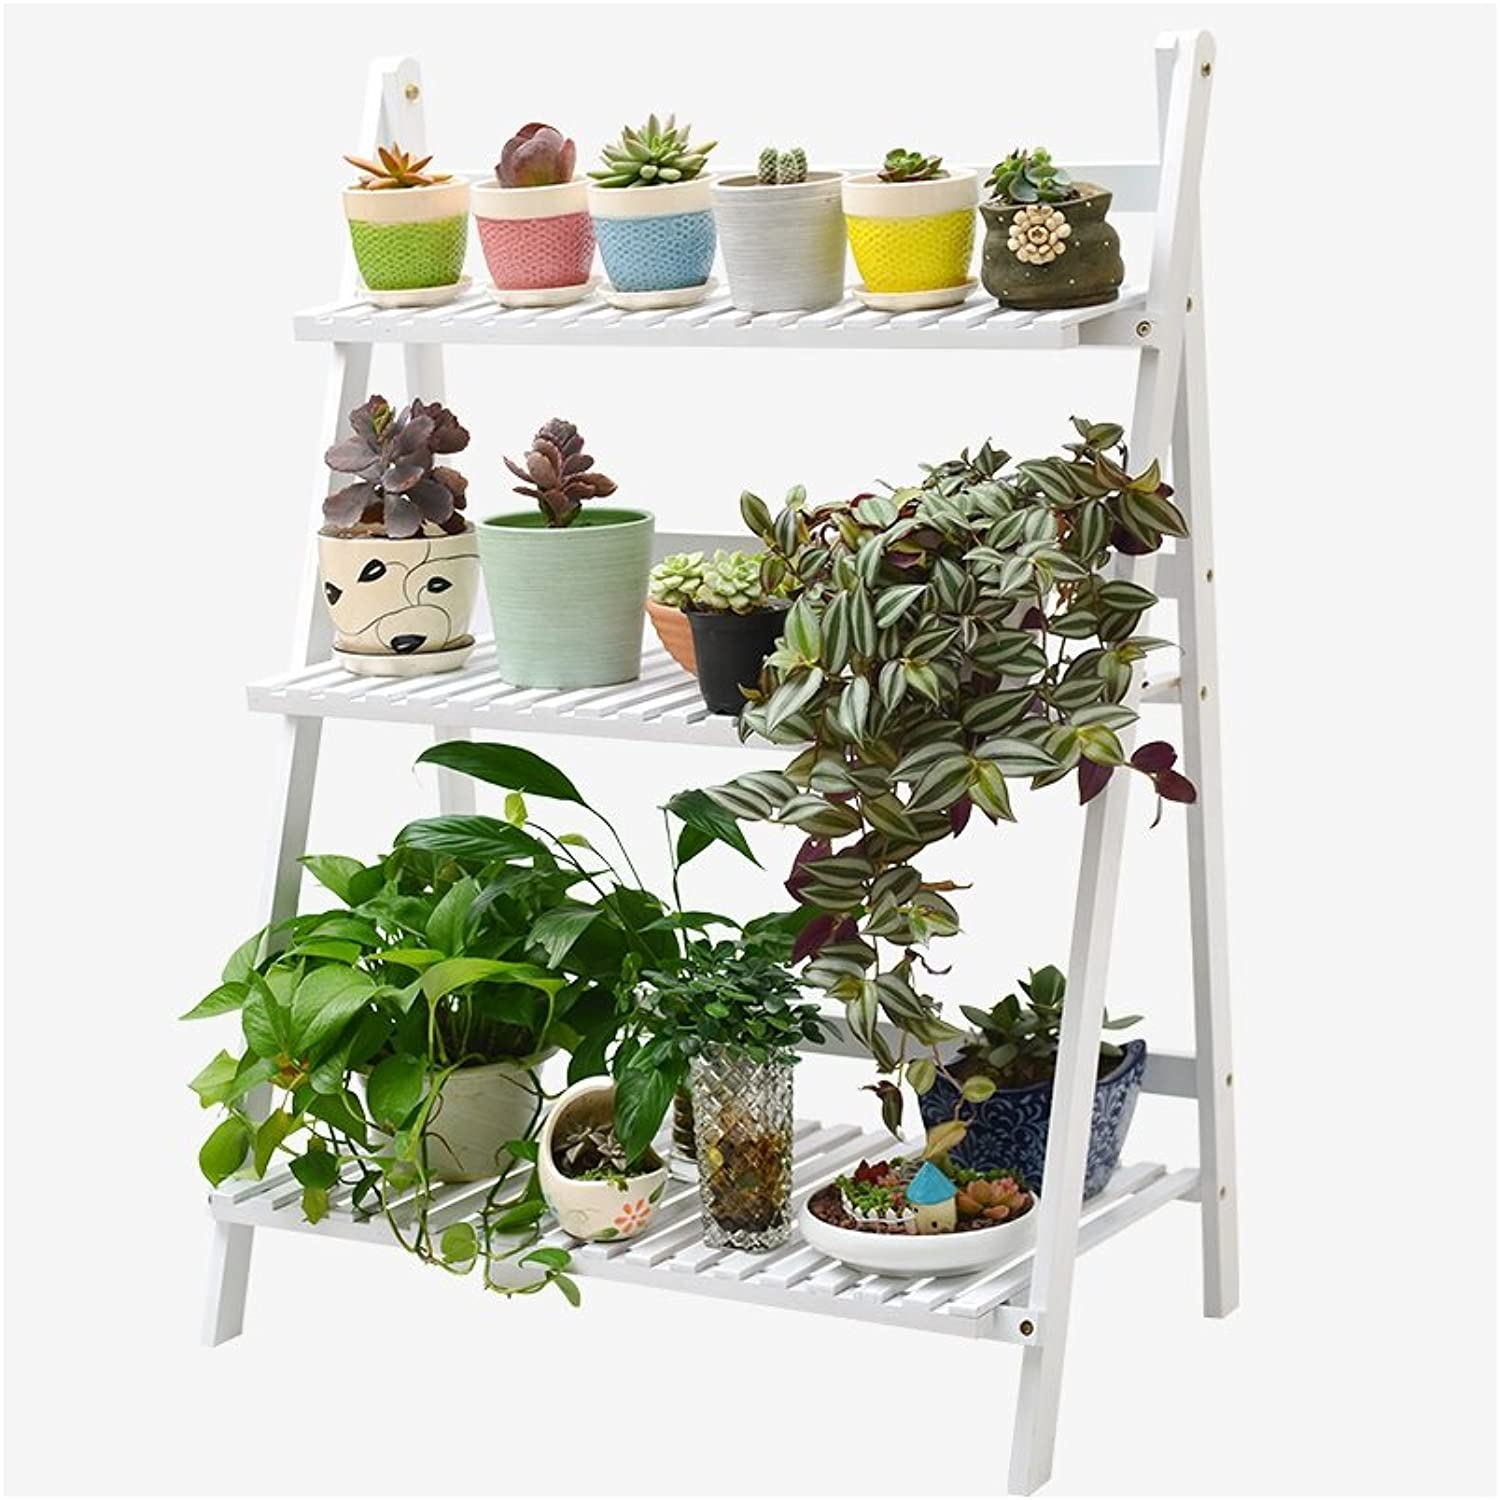 WAN SAN QIAN- Bamboo Rattan Floor Stand 3 Tier Creative Hanging Bamboo Living Room Folding Flower RackBalcony Living Room Flower Shelf 70x96cm Flower racks ( color   White )